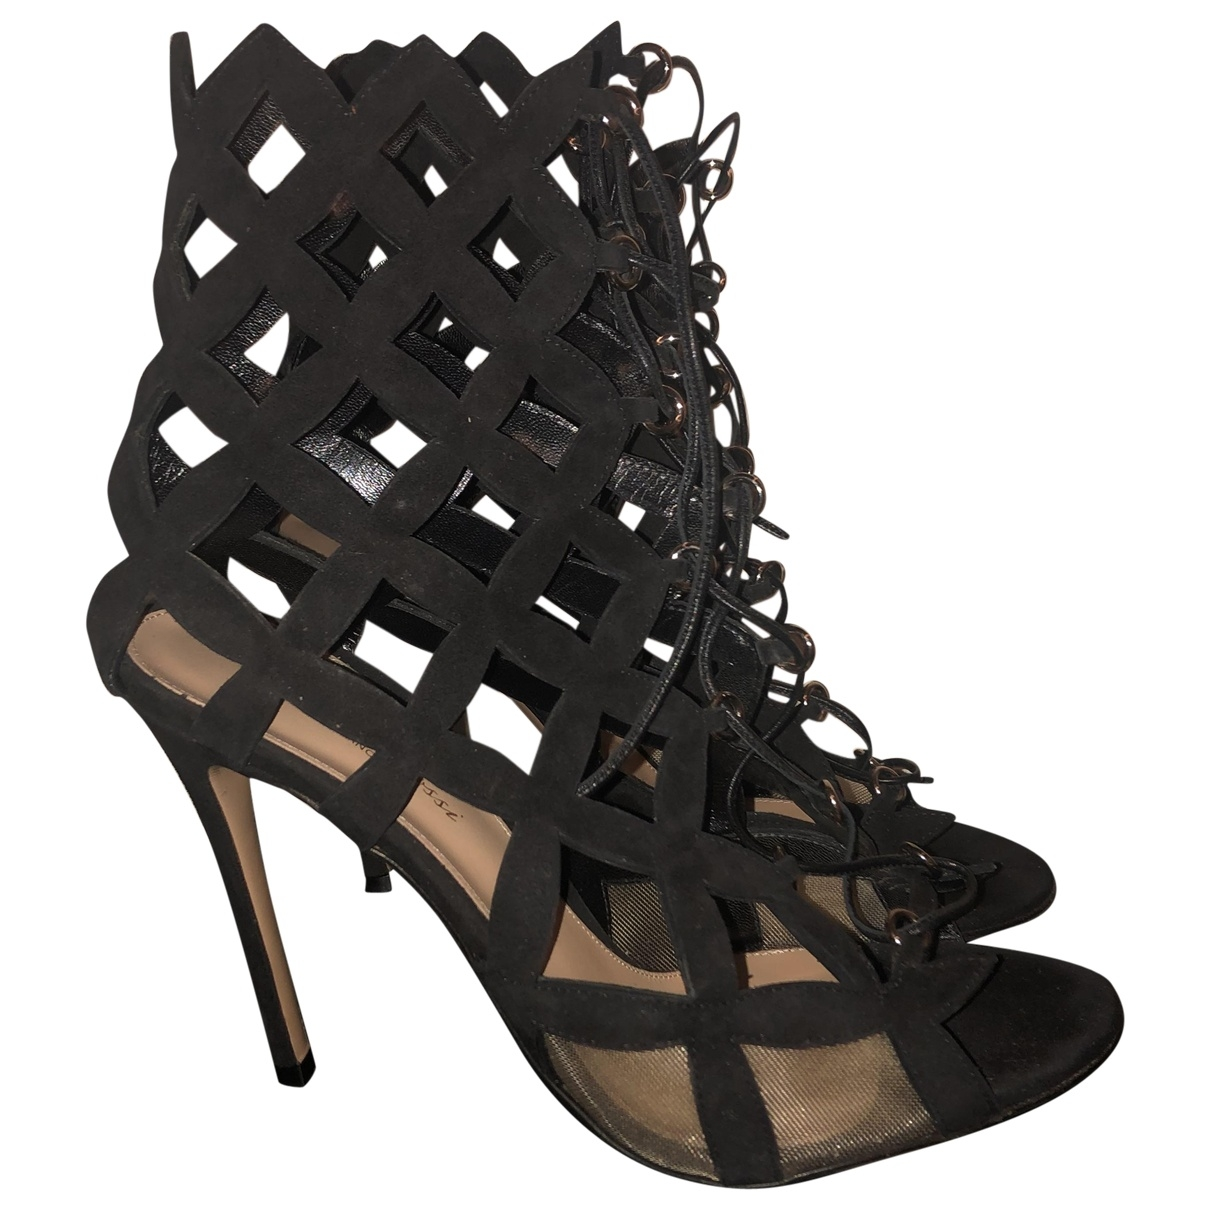 Gianvito Rossi \N Black Suede Heels for Women 40 EU